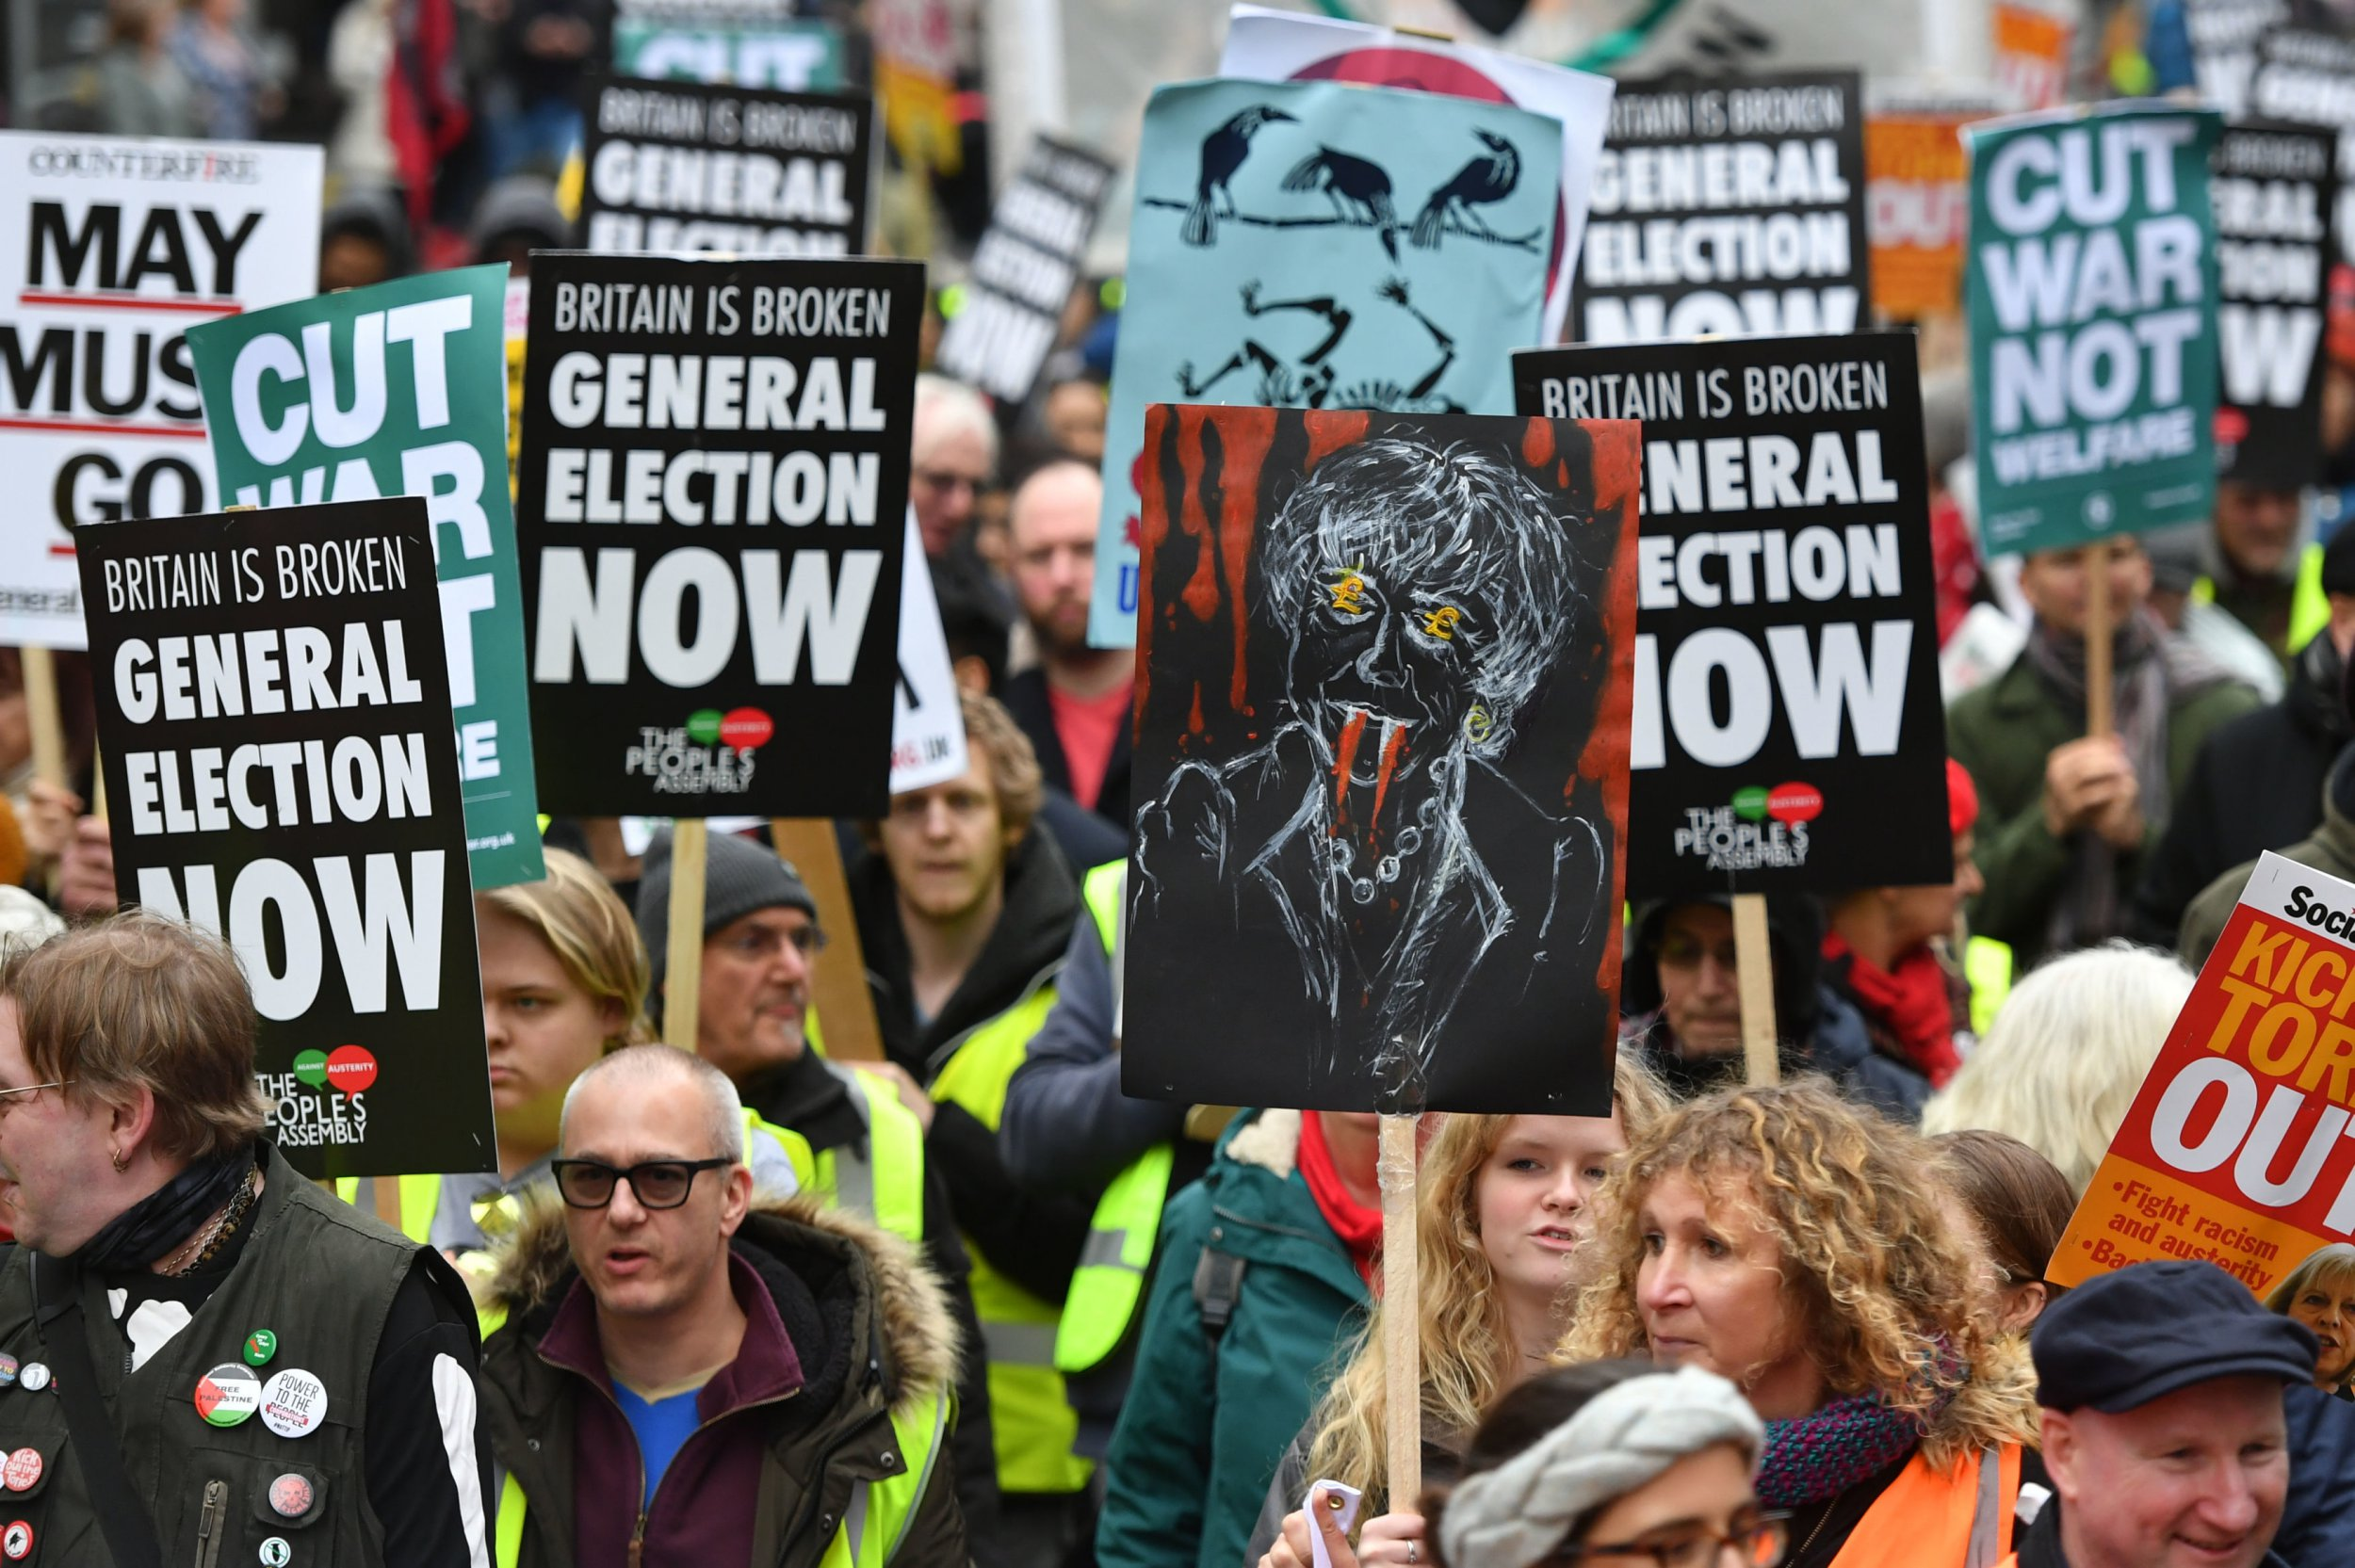 Hundreds join 'yellow vest-inspired' anti-austerity march in London